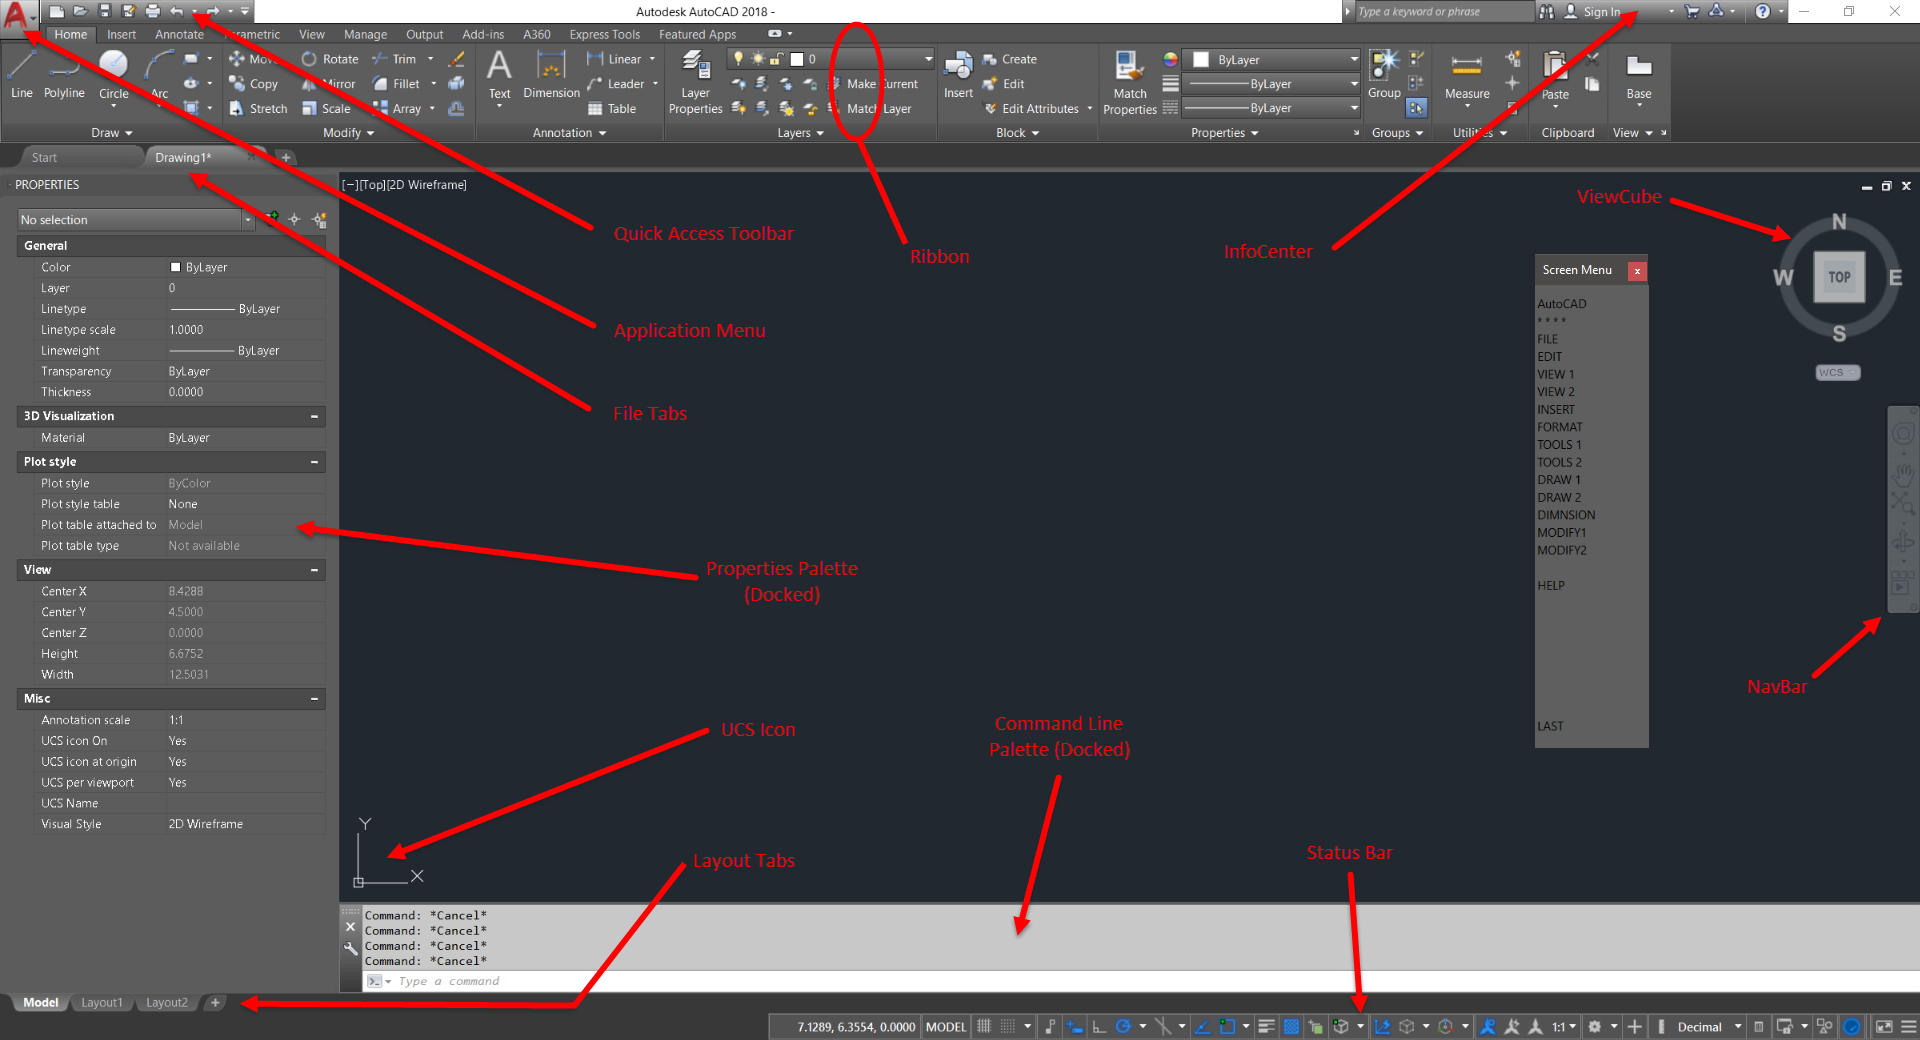 Autocad User Interface Elements